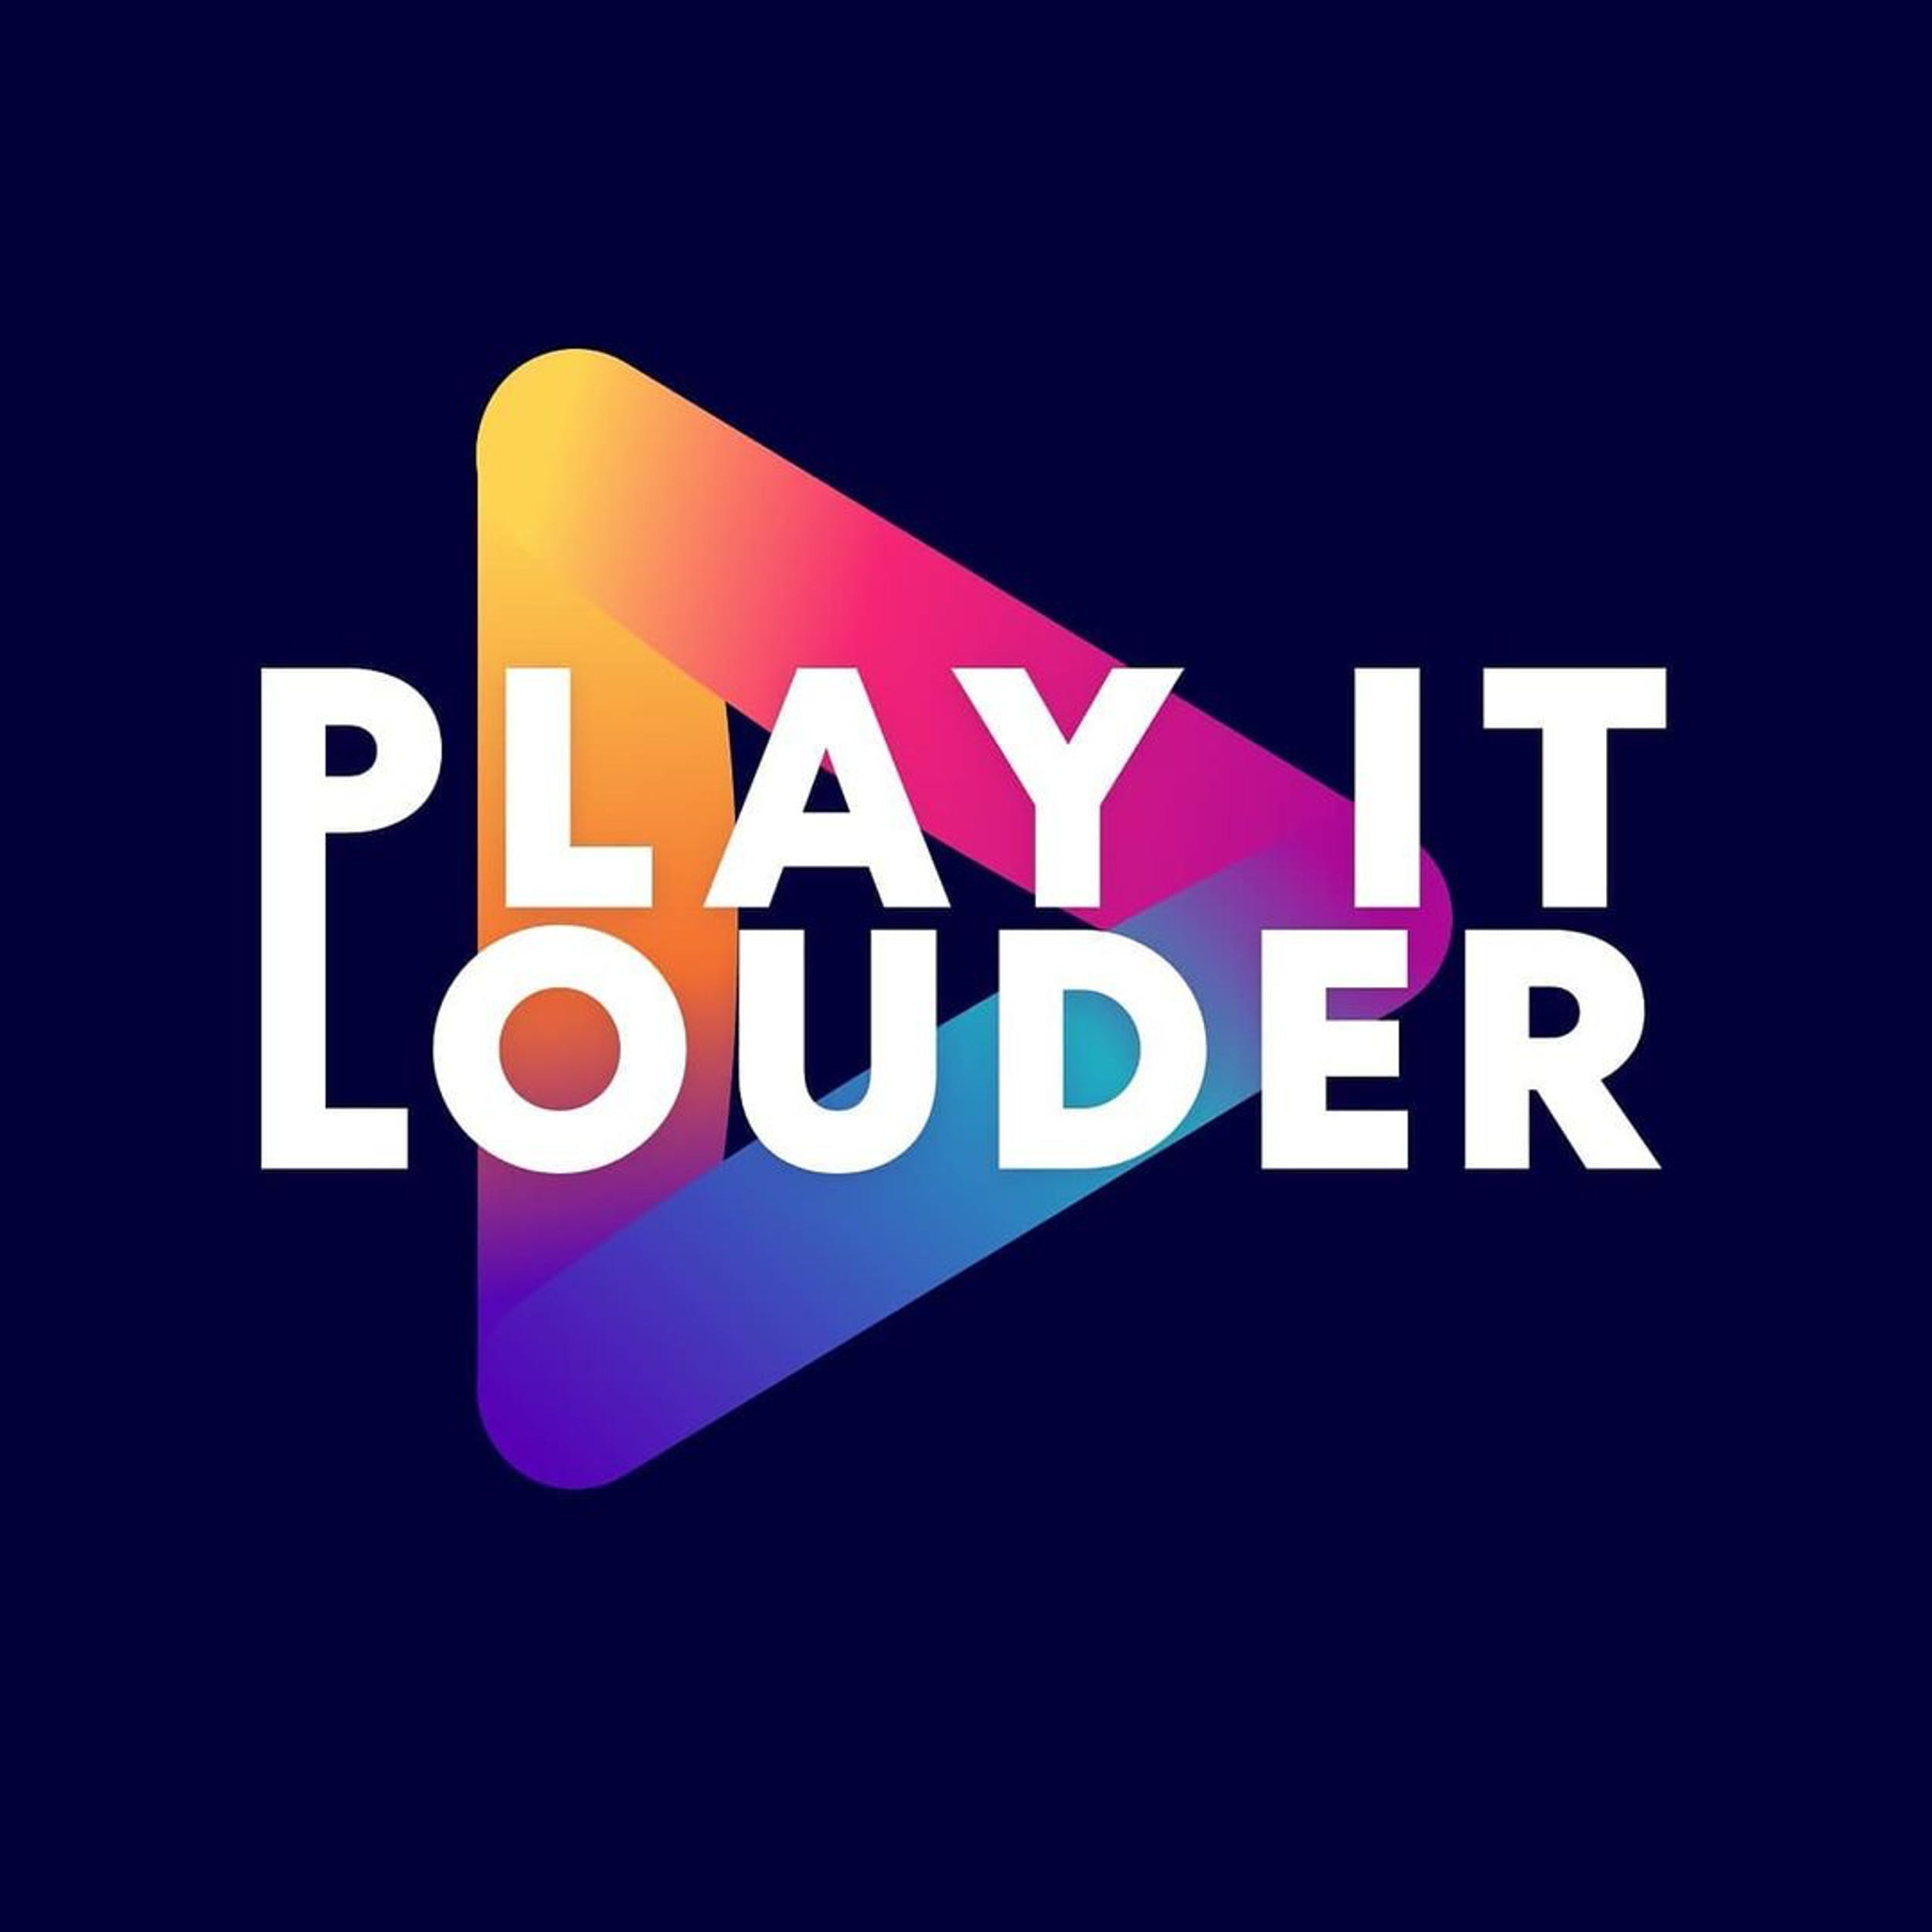 The colourful Play It Louder logo